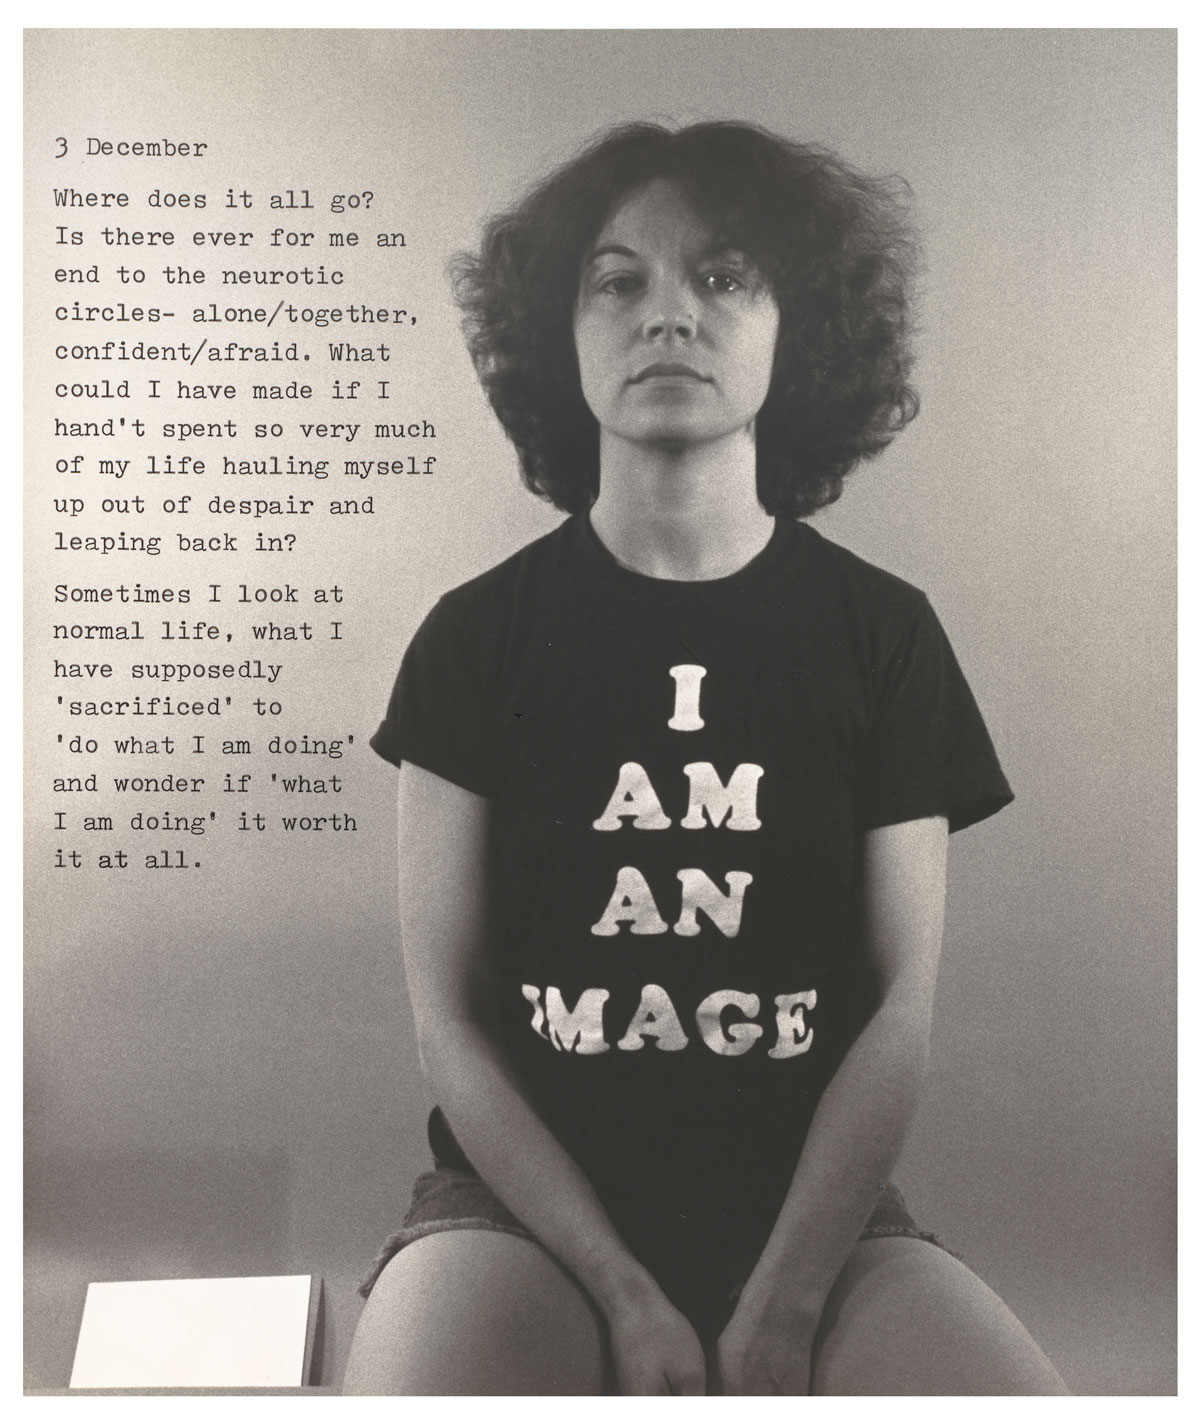 Donna-Lee Phillips, 'December 3, 1977,' from 'Fragments from a Visual Journal,' 1977.